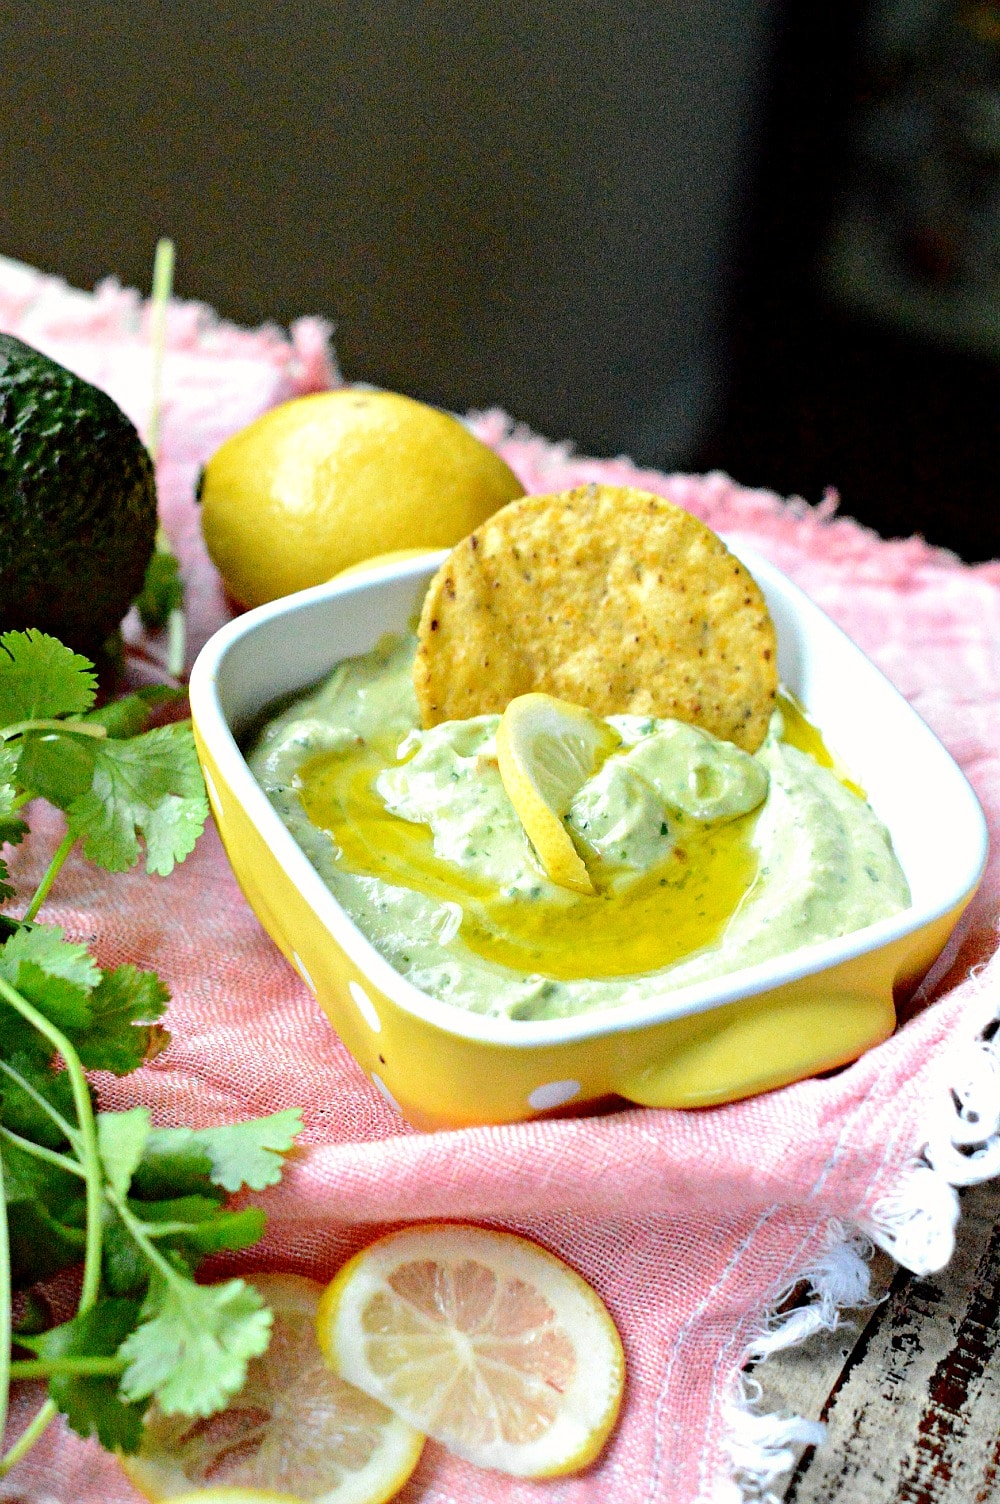 Simple avocado dip only 6 ingredients with cilantro, tahini and olive oils. A creamy simple guacamole recipe perfect to dip tortilla chips.